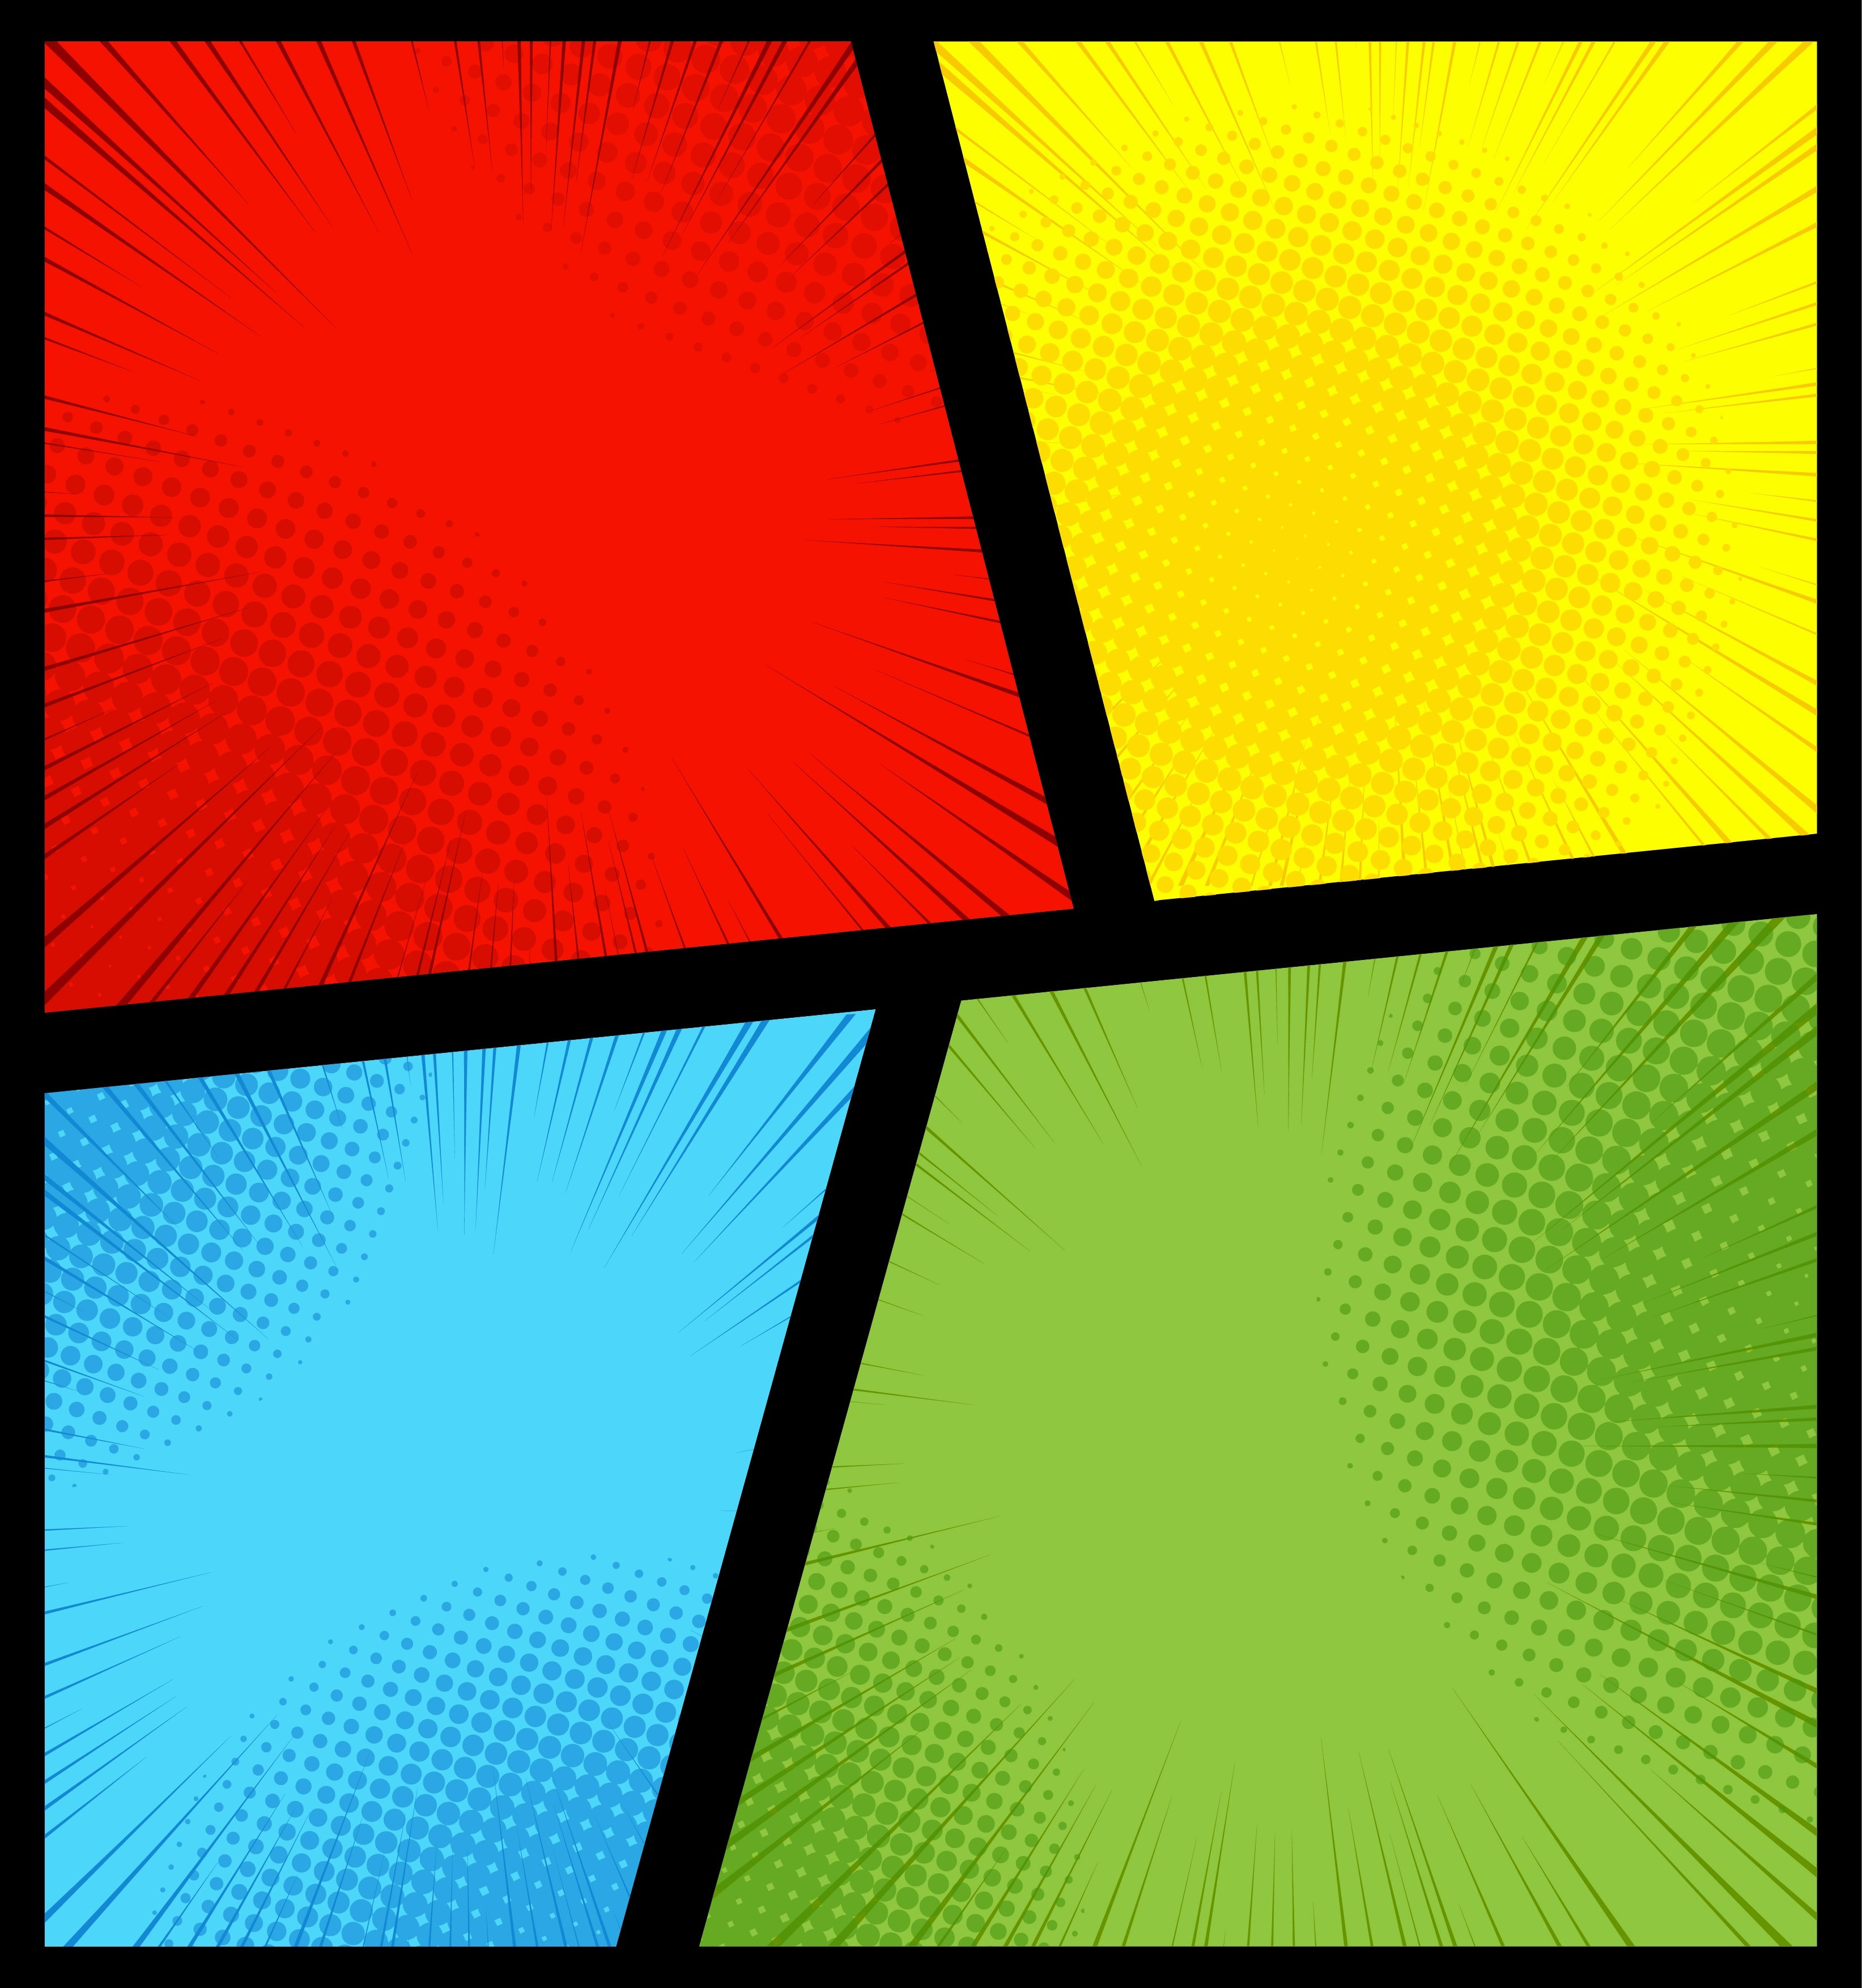 Comic Book Page Background With Radial Halftone Effects